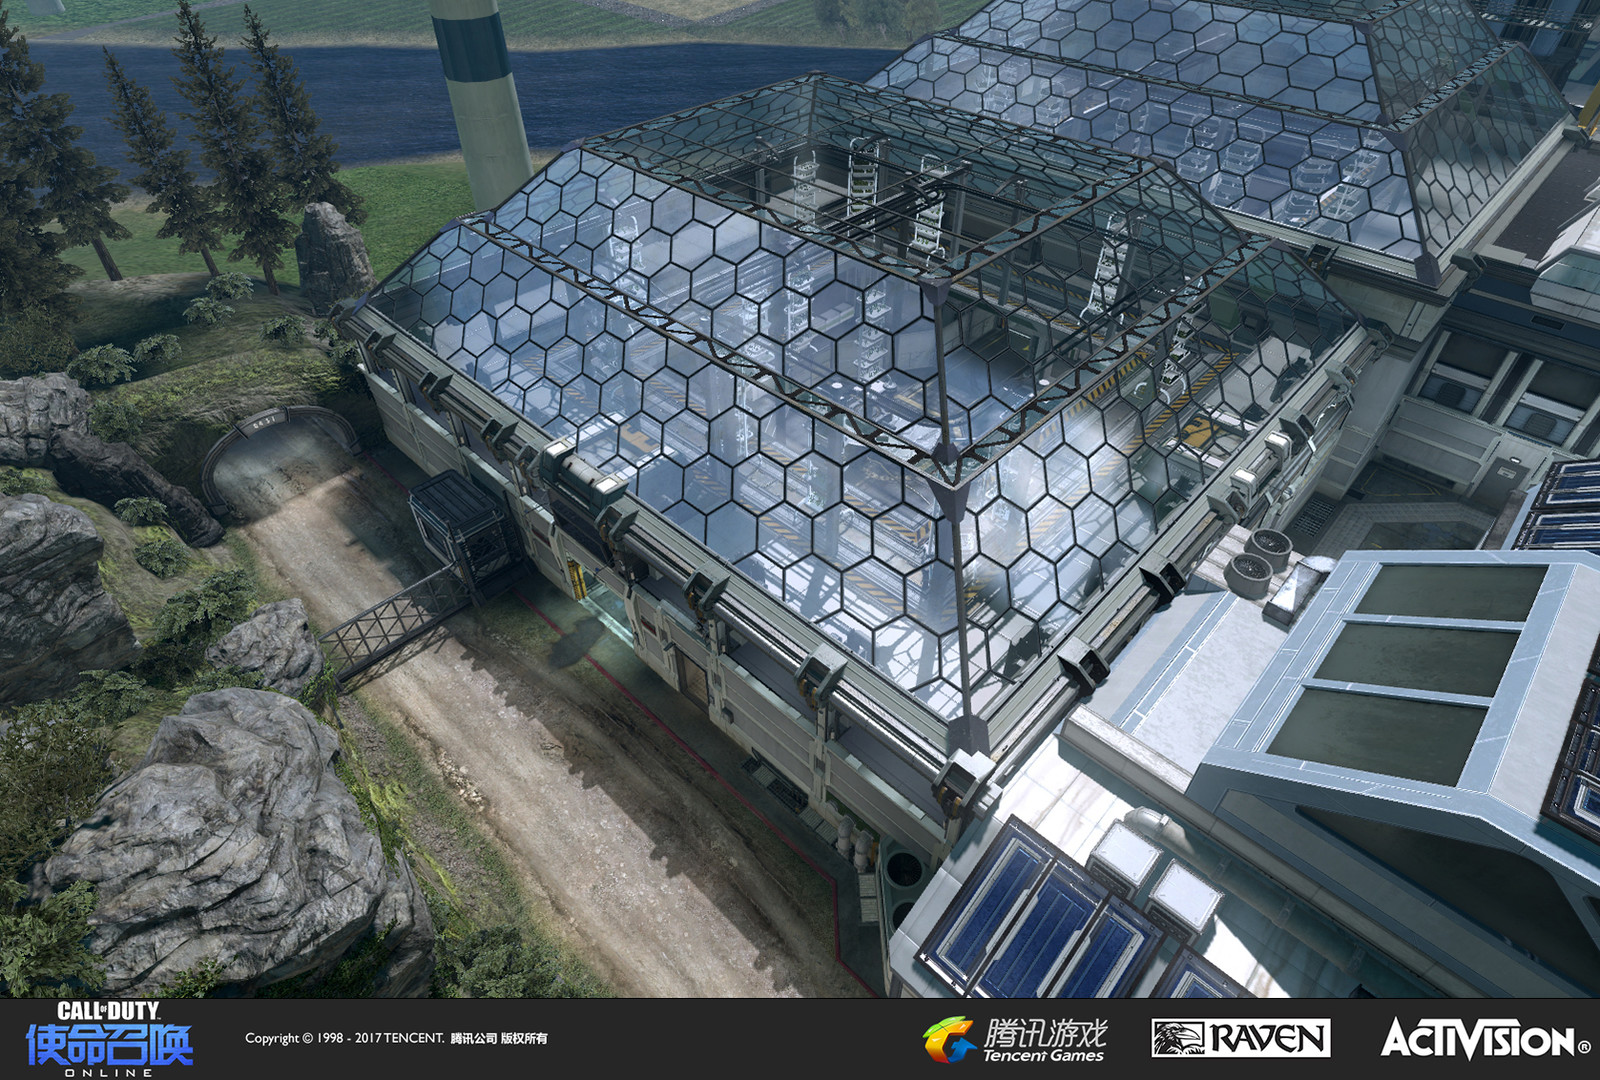 Exterior of the greenhouse buildings. I was responsible for the building geo, custom models, and material treatment. The terrain and near vista was created by Eugene Geer.